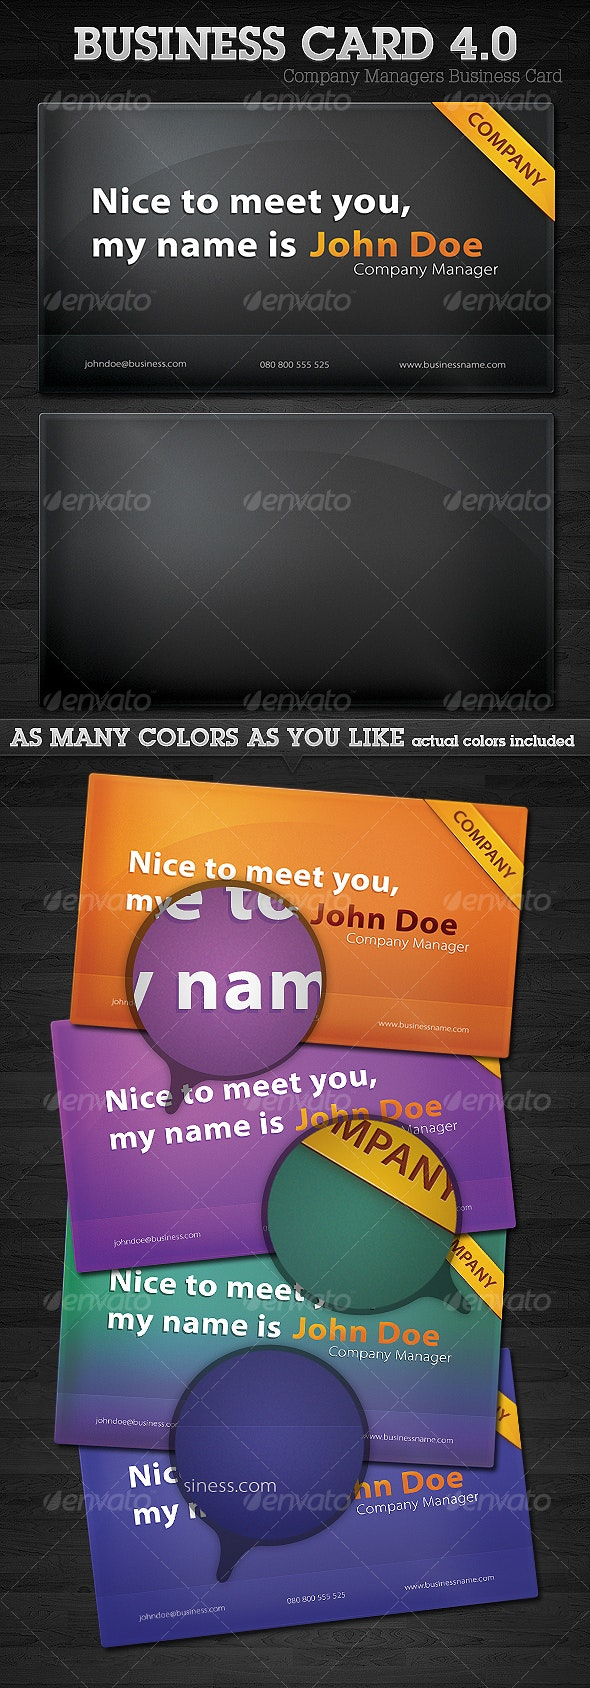 Company Managers Business Card 4.0 - Corporate Business Cards